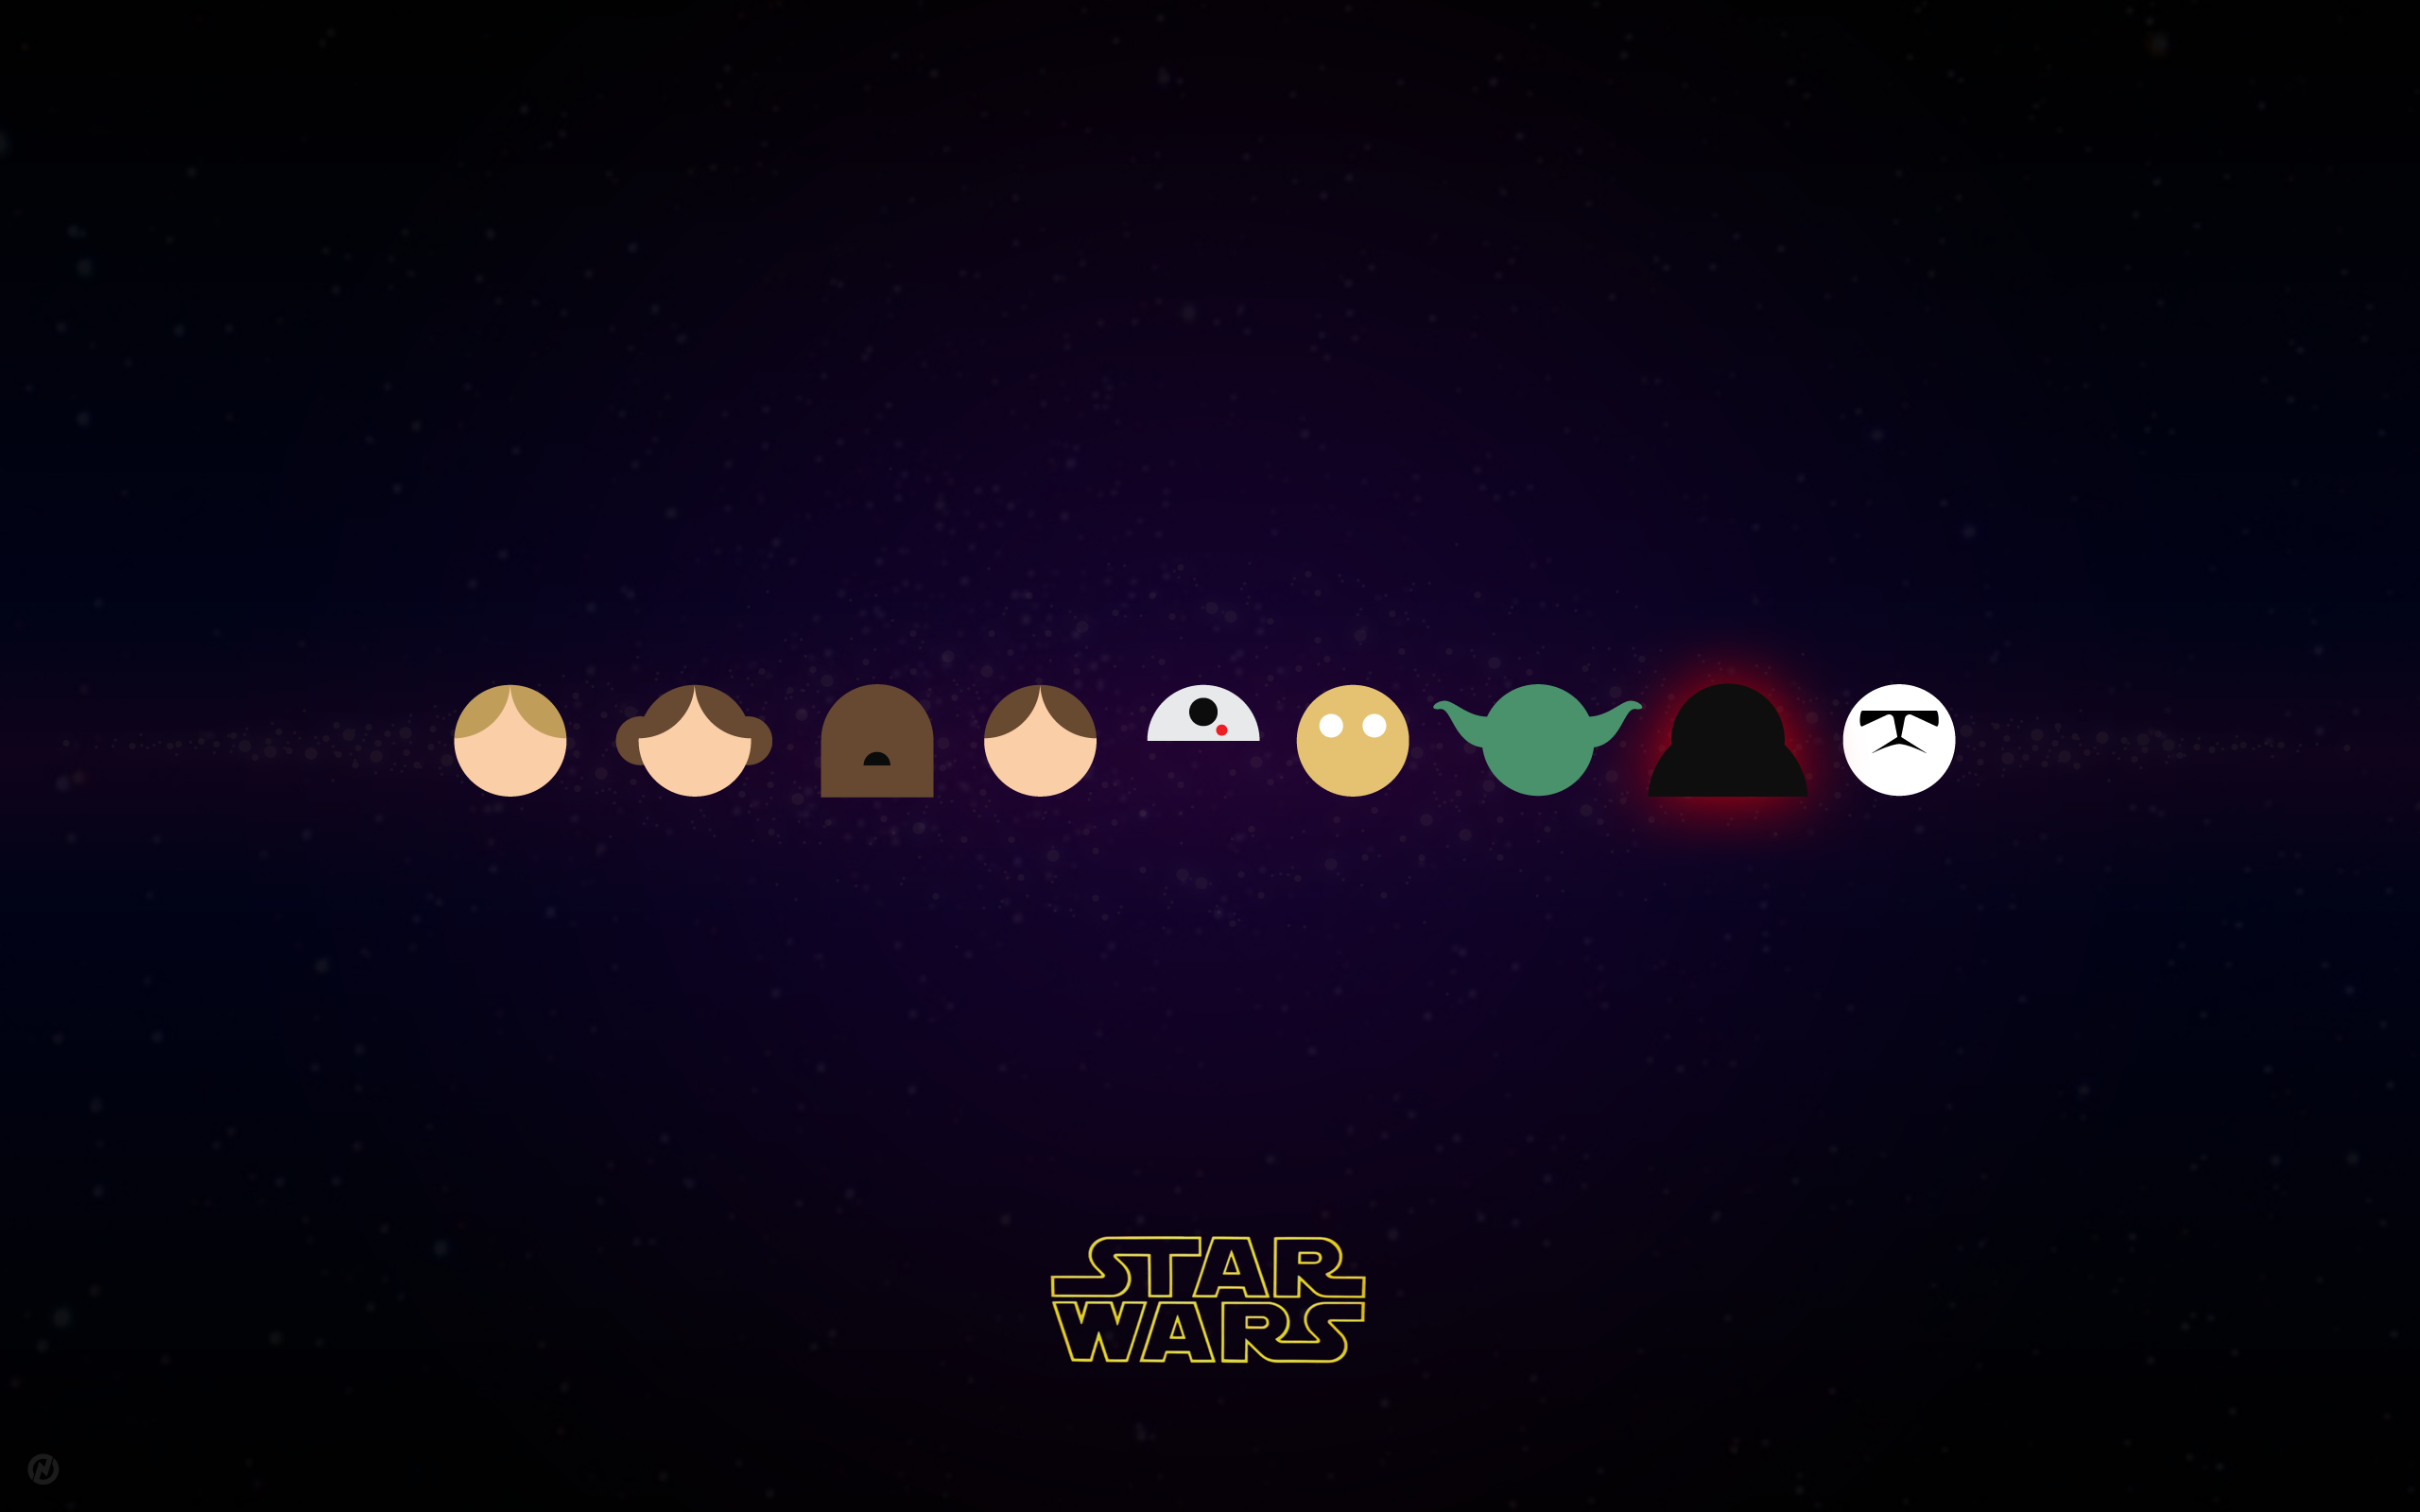 Star Wars Characters in Vector by Neightron